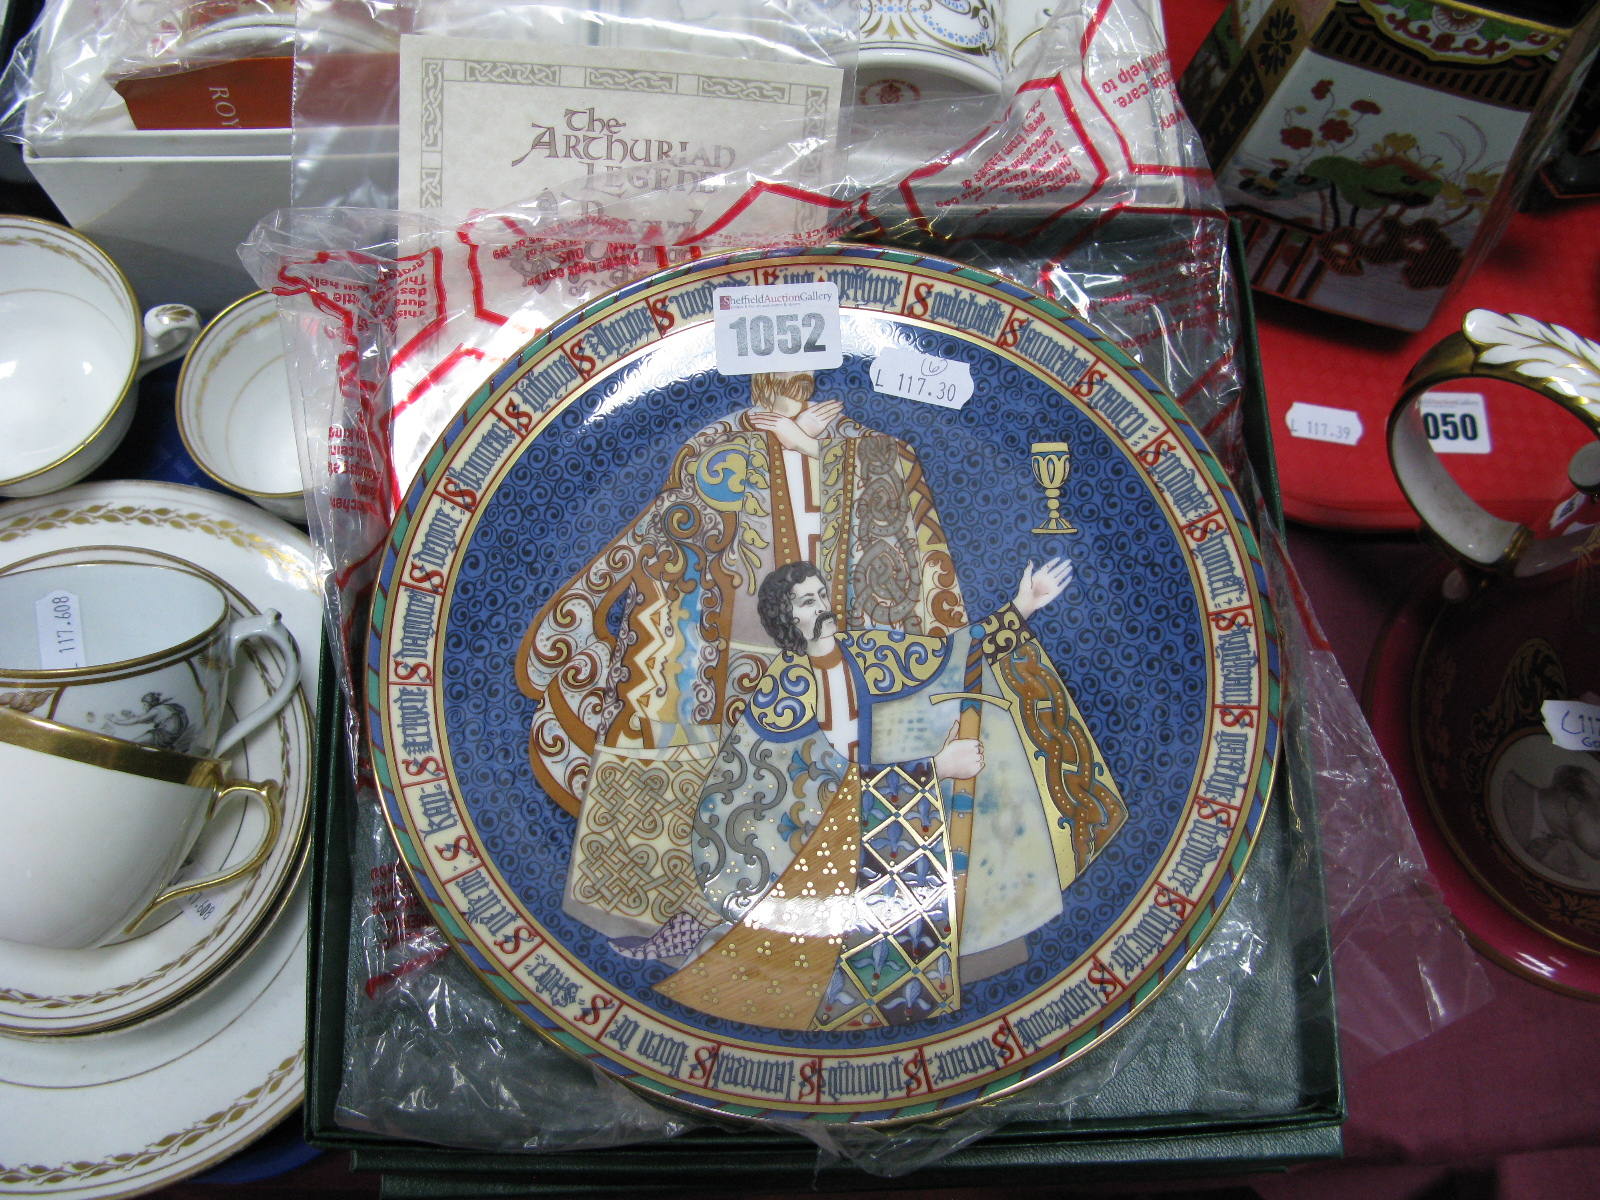 Lot 1052 - A Set of Six Minton China 'The Arthurian Legend' Plates, numbers 1-6 from the original paintings